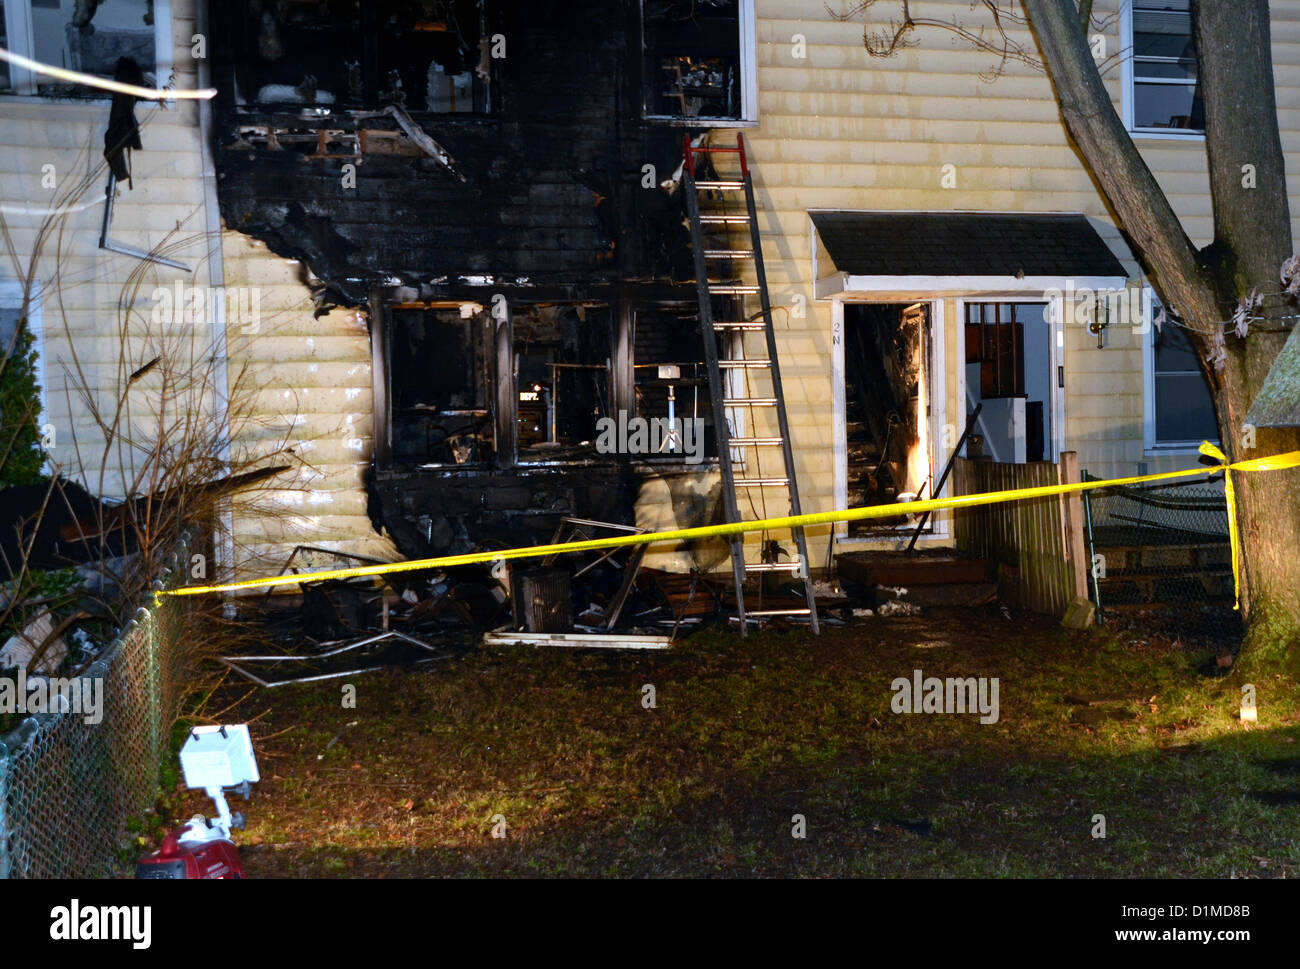 Maryland, USA. 28th December 2012. 1 elderly woman  is dead and 2 are seriously injured and 4 are left homeless - Stock Image